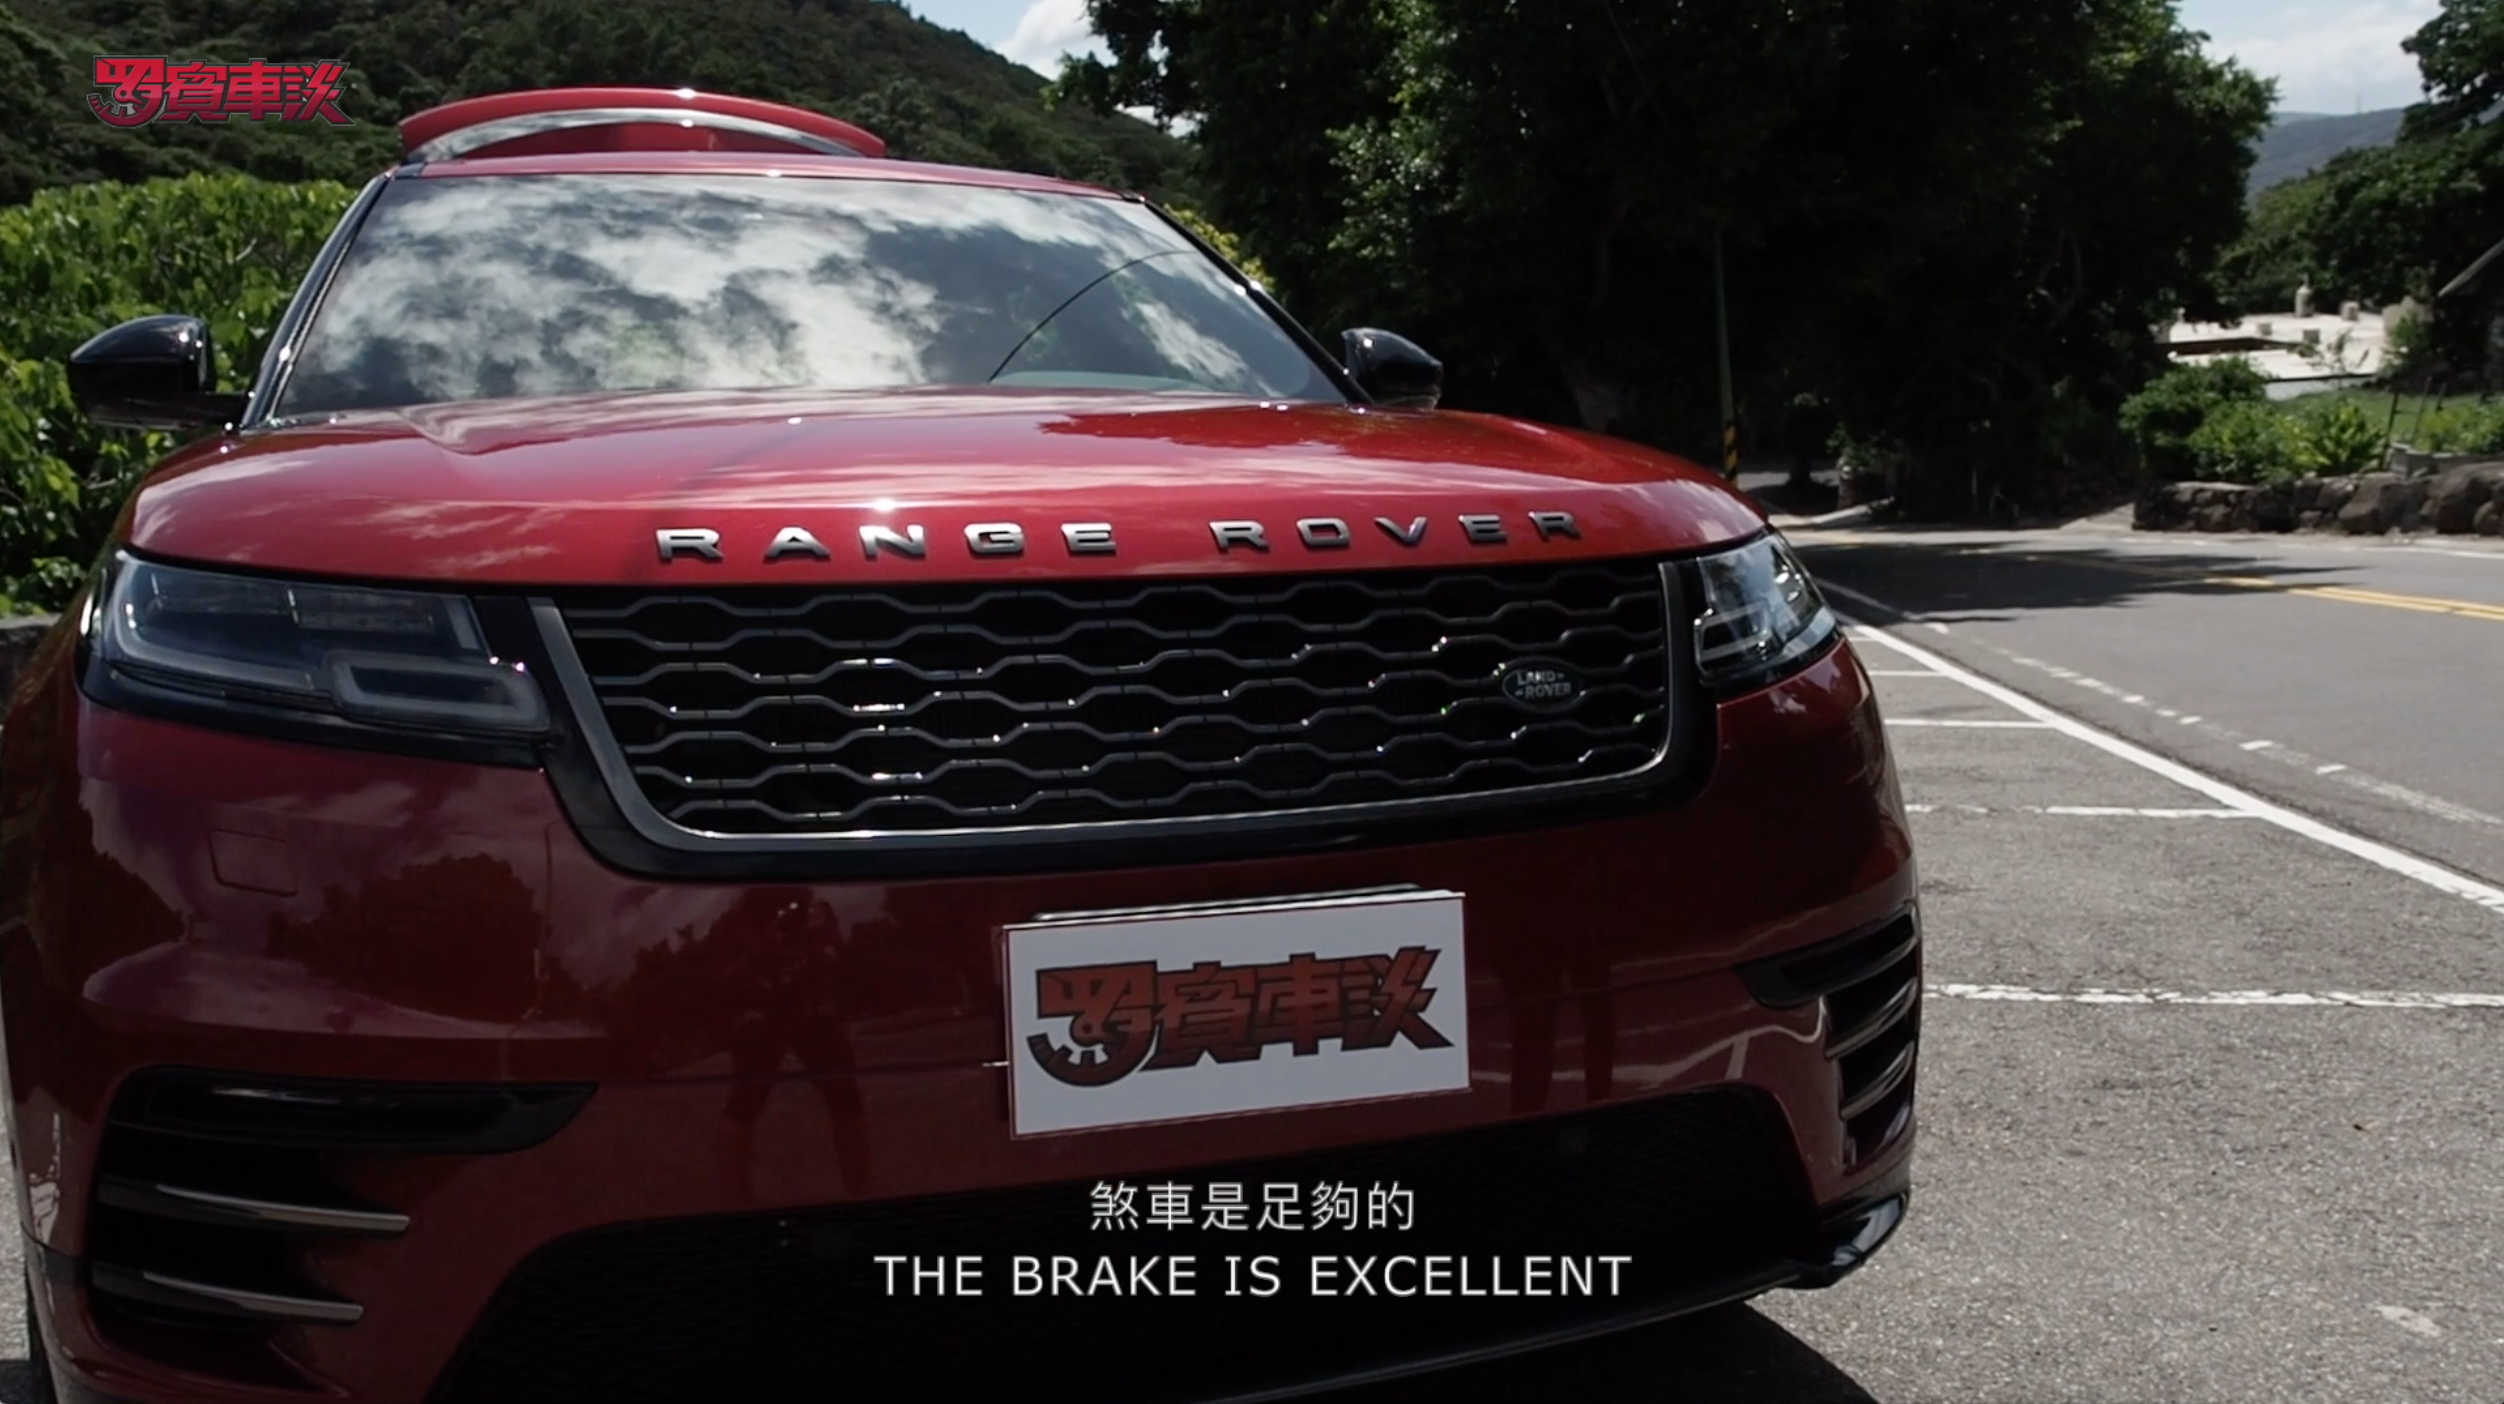 【羅賓車談】New Cars on the Block:Range Rover Velar 試駕